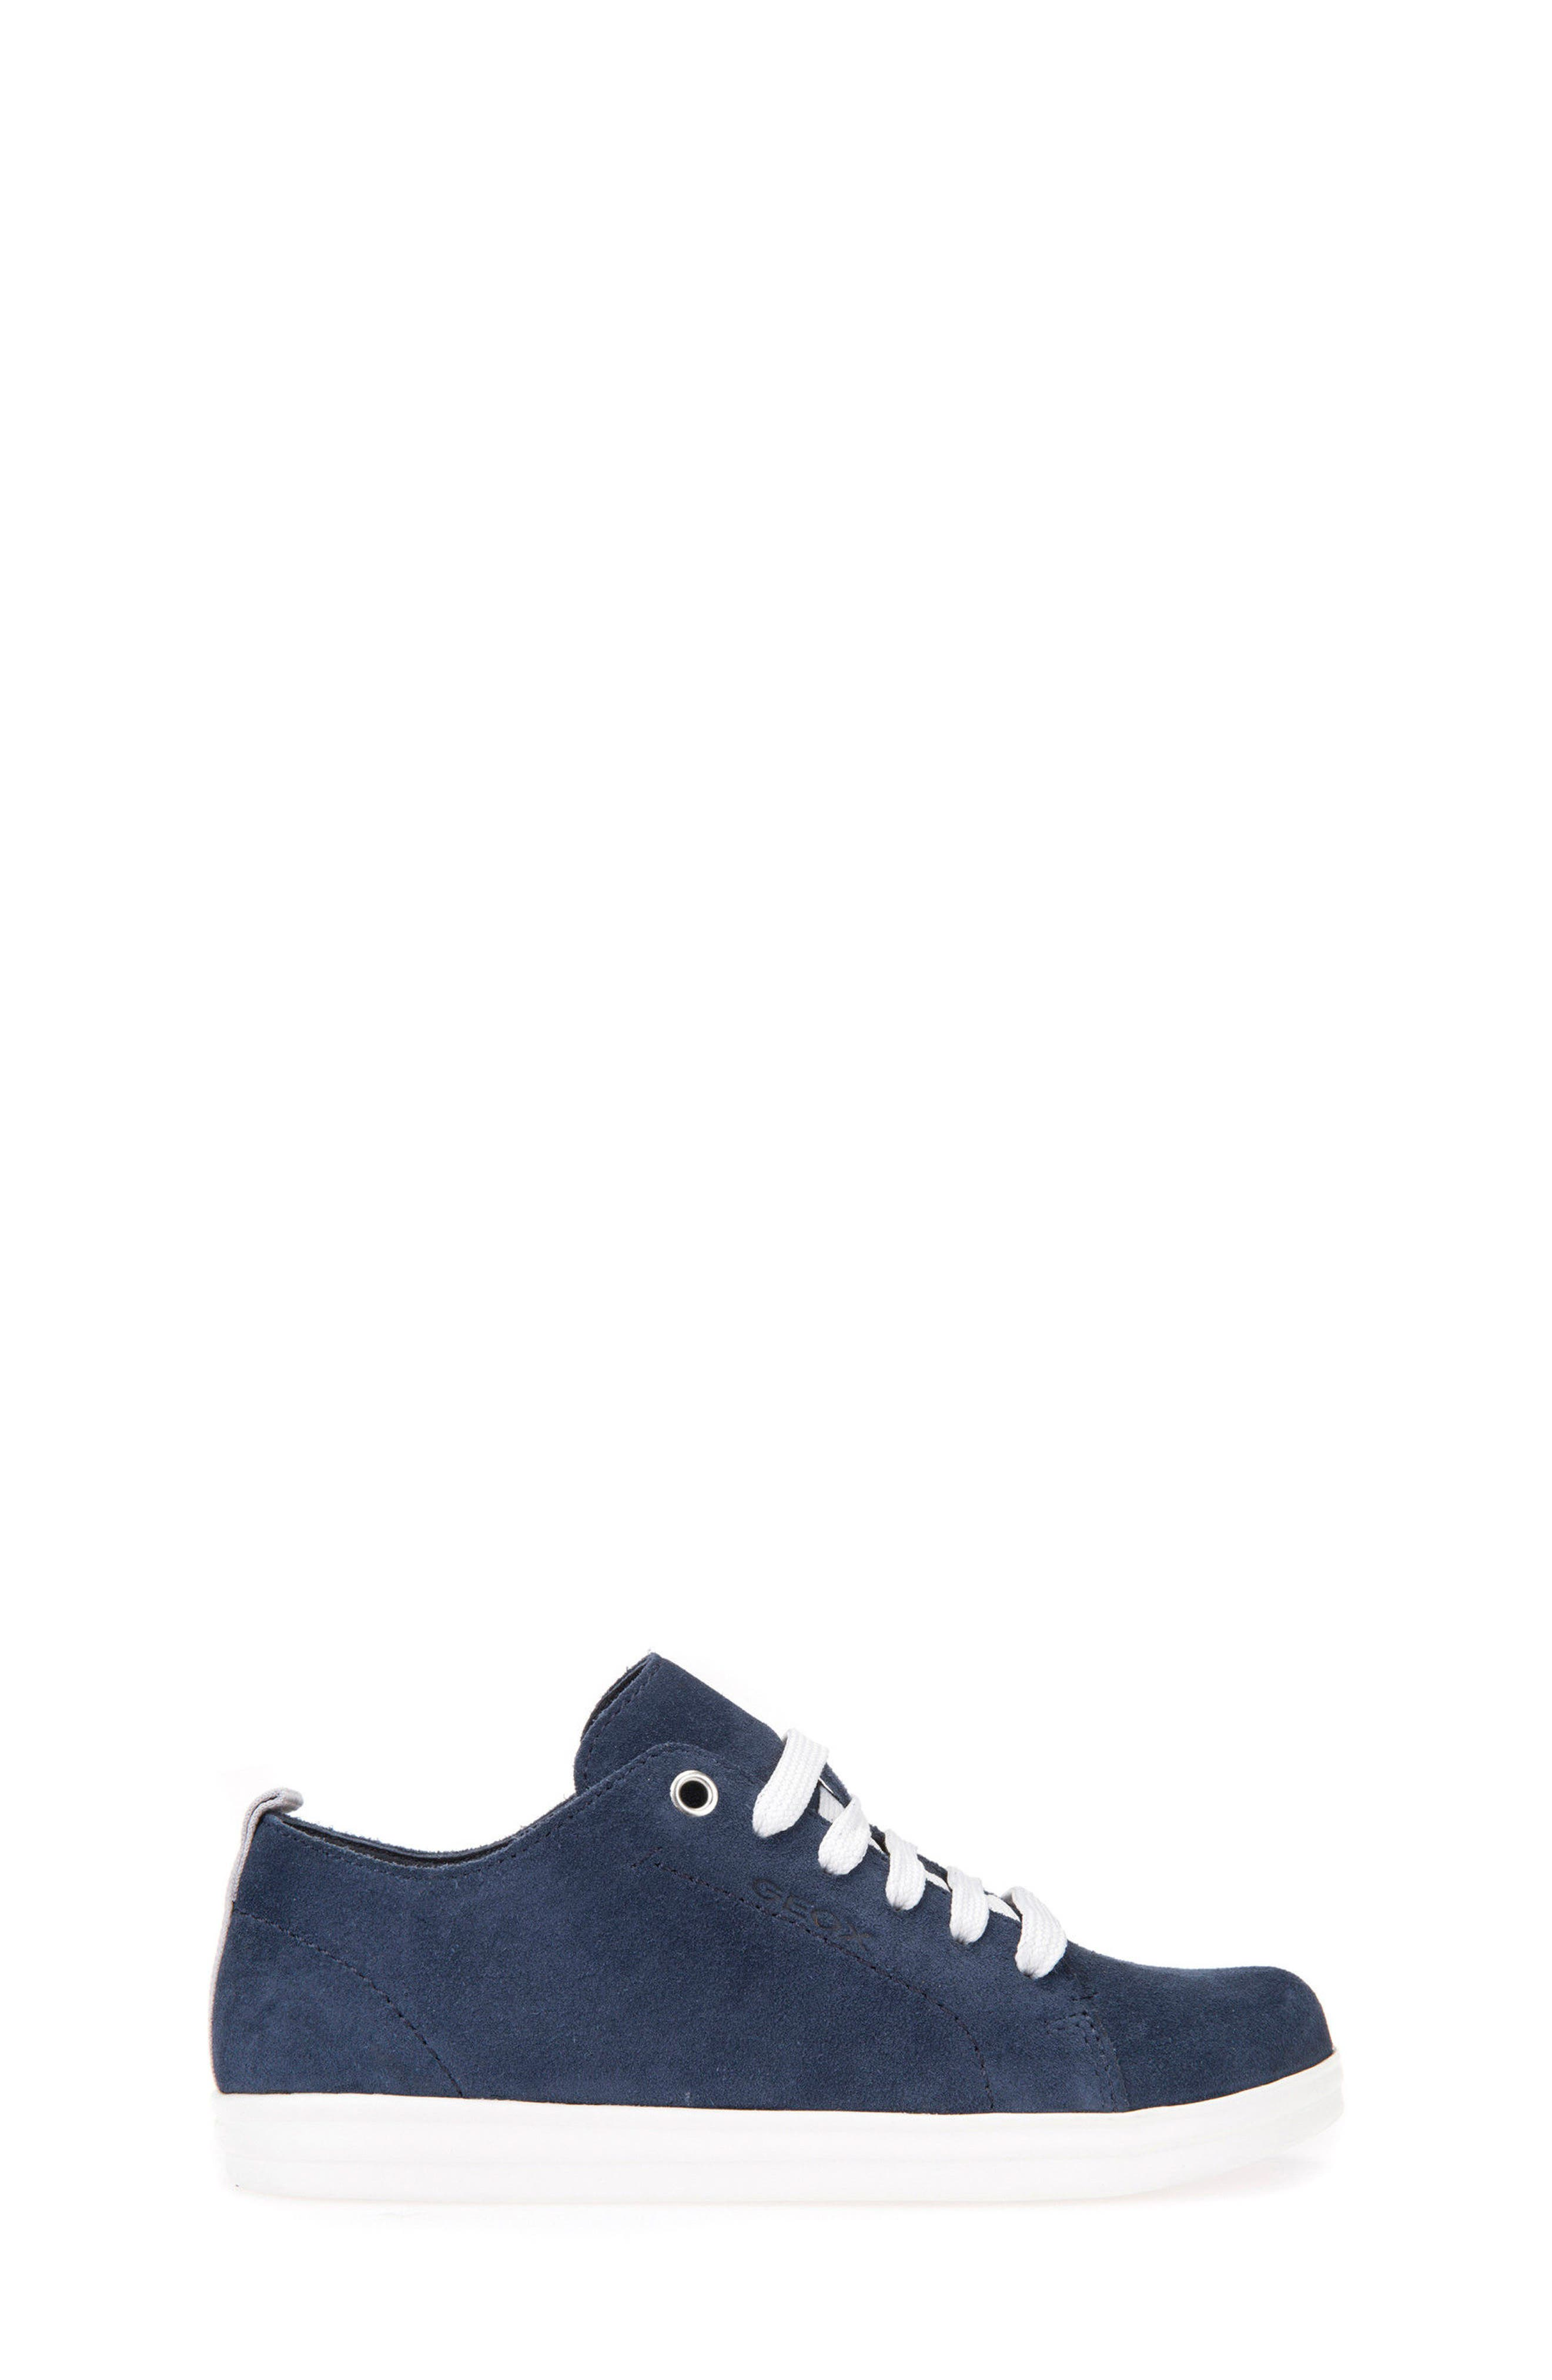 Anthor Low Top Sneaker,                             Alternate thumbnail 3, color,                             Navy